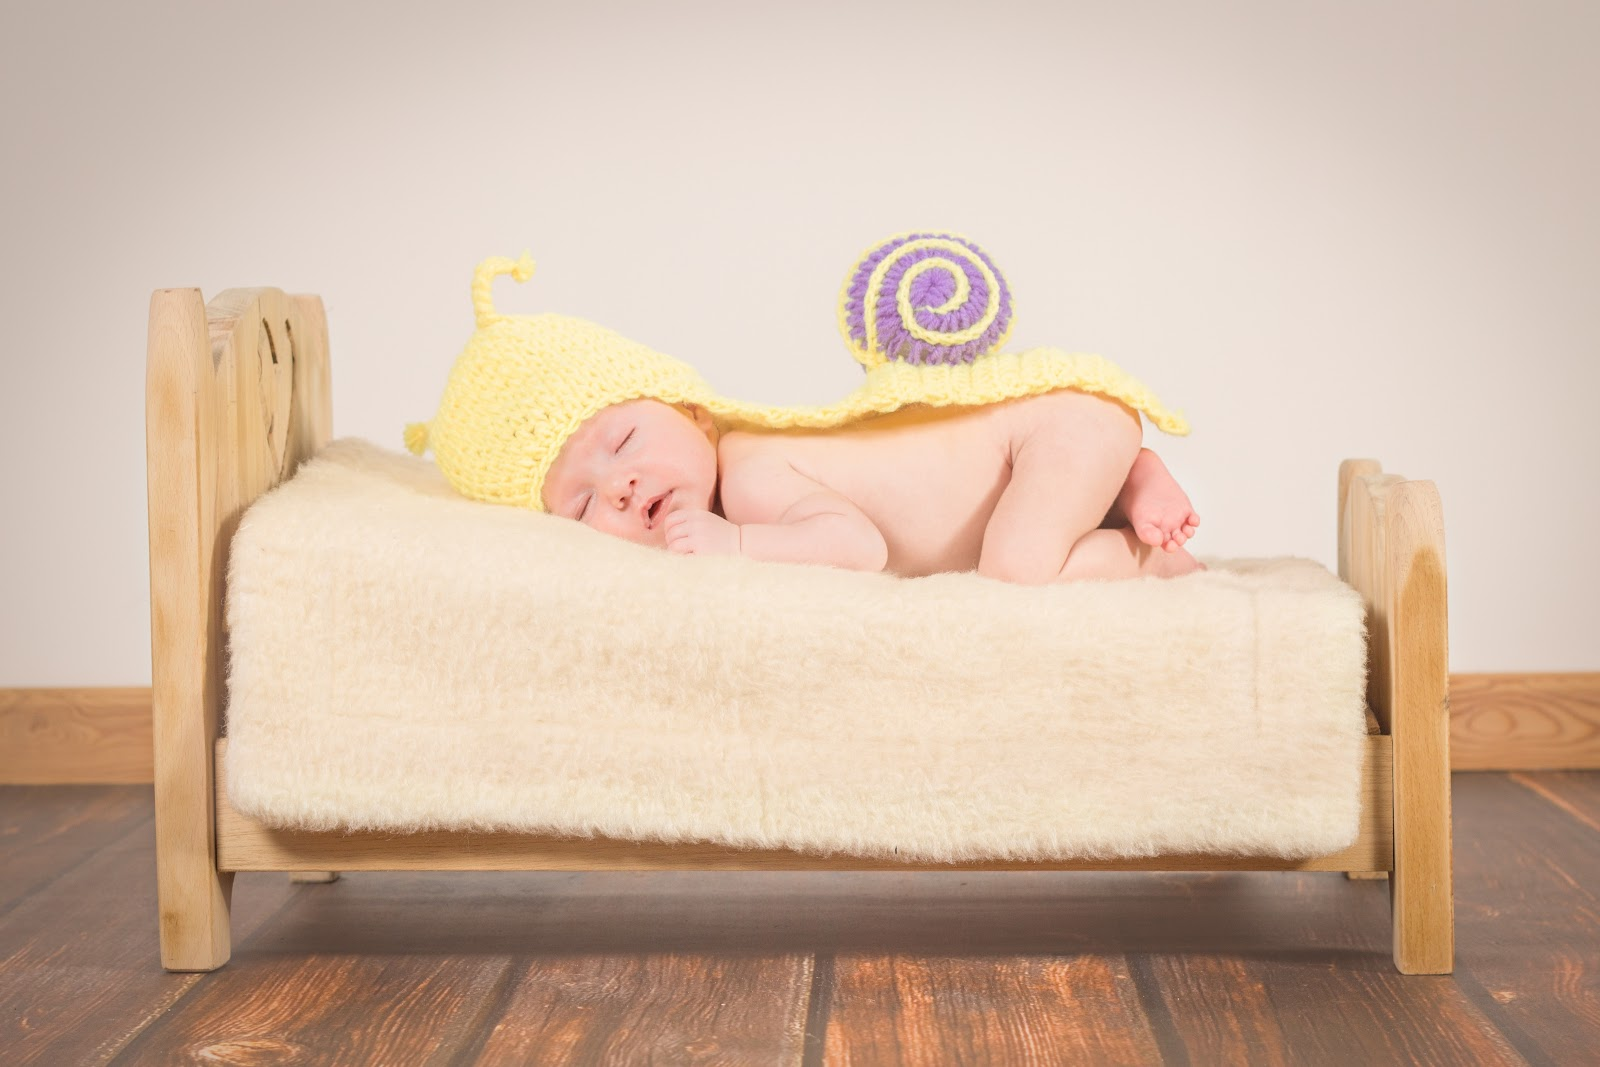 Newborn baby sleeping but it'll soon be time to think of safety in your home